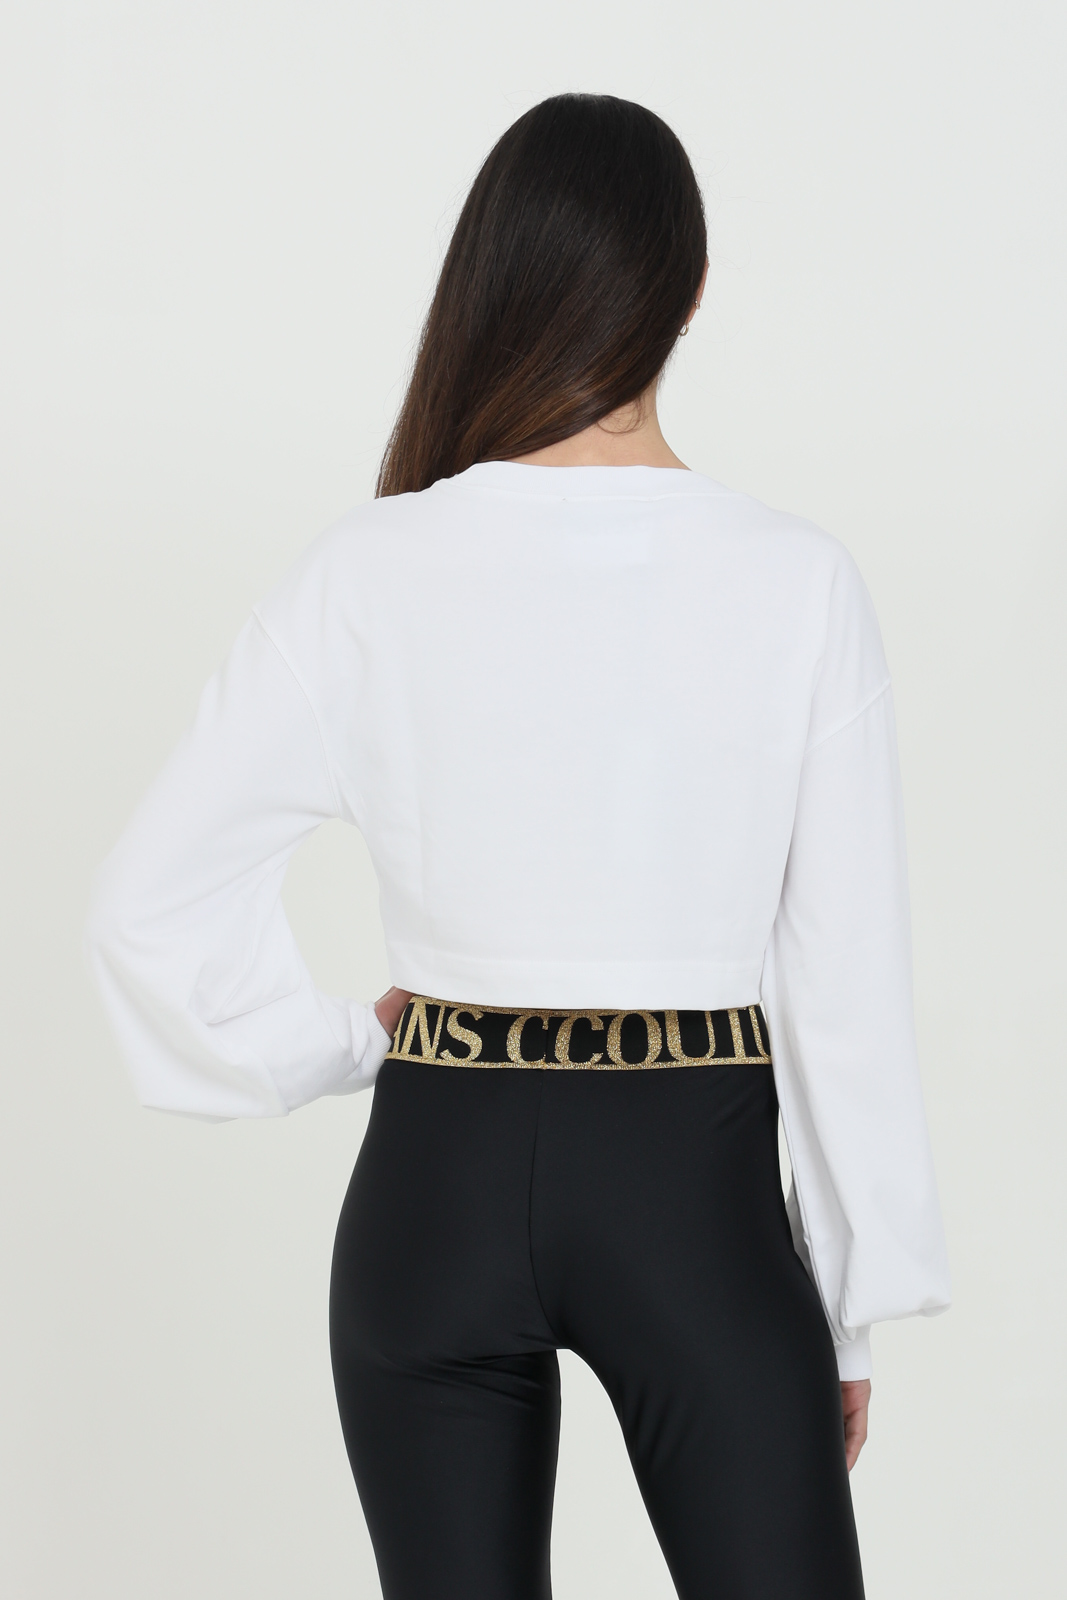 Felpa donna bianca Versace Jeans Couture girocollo crop manica lunga con stampa frontale VERSACE JEANS COUTURE | Felpe | B2HWA7KB10634003